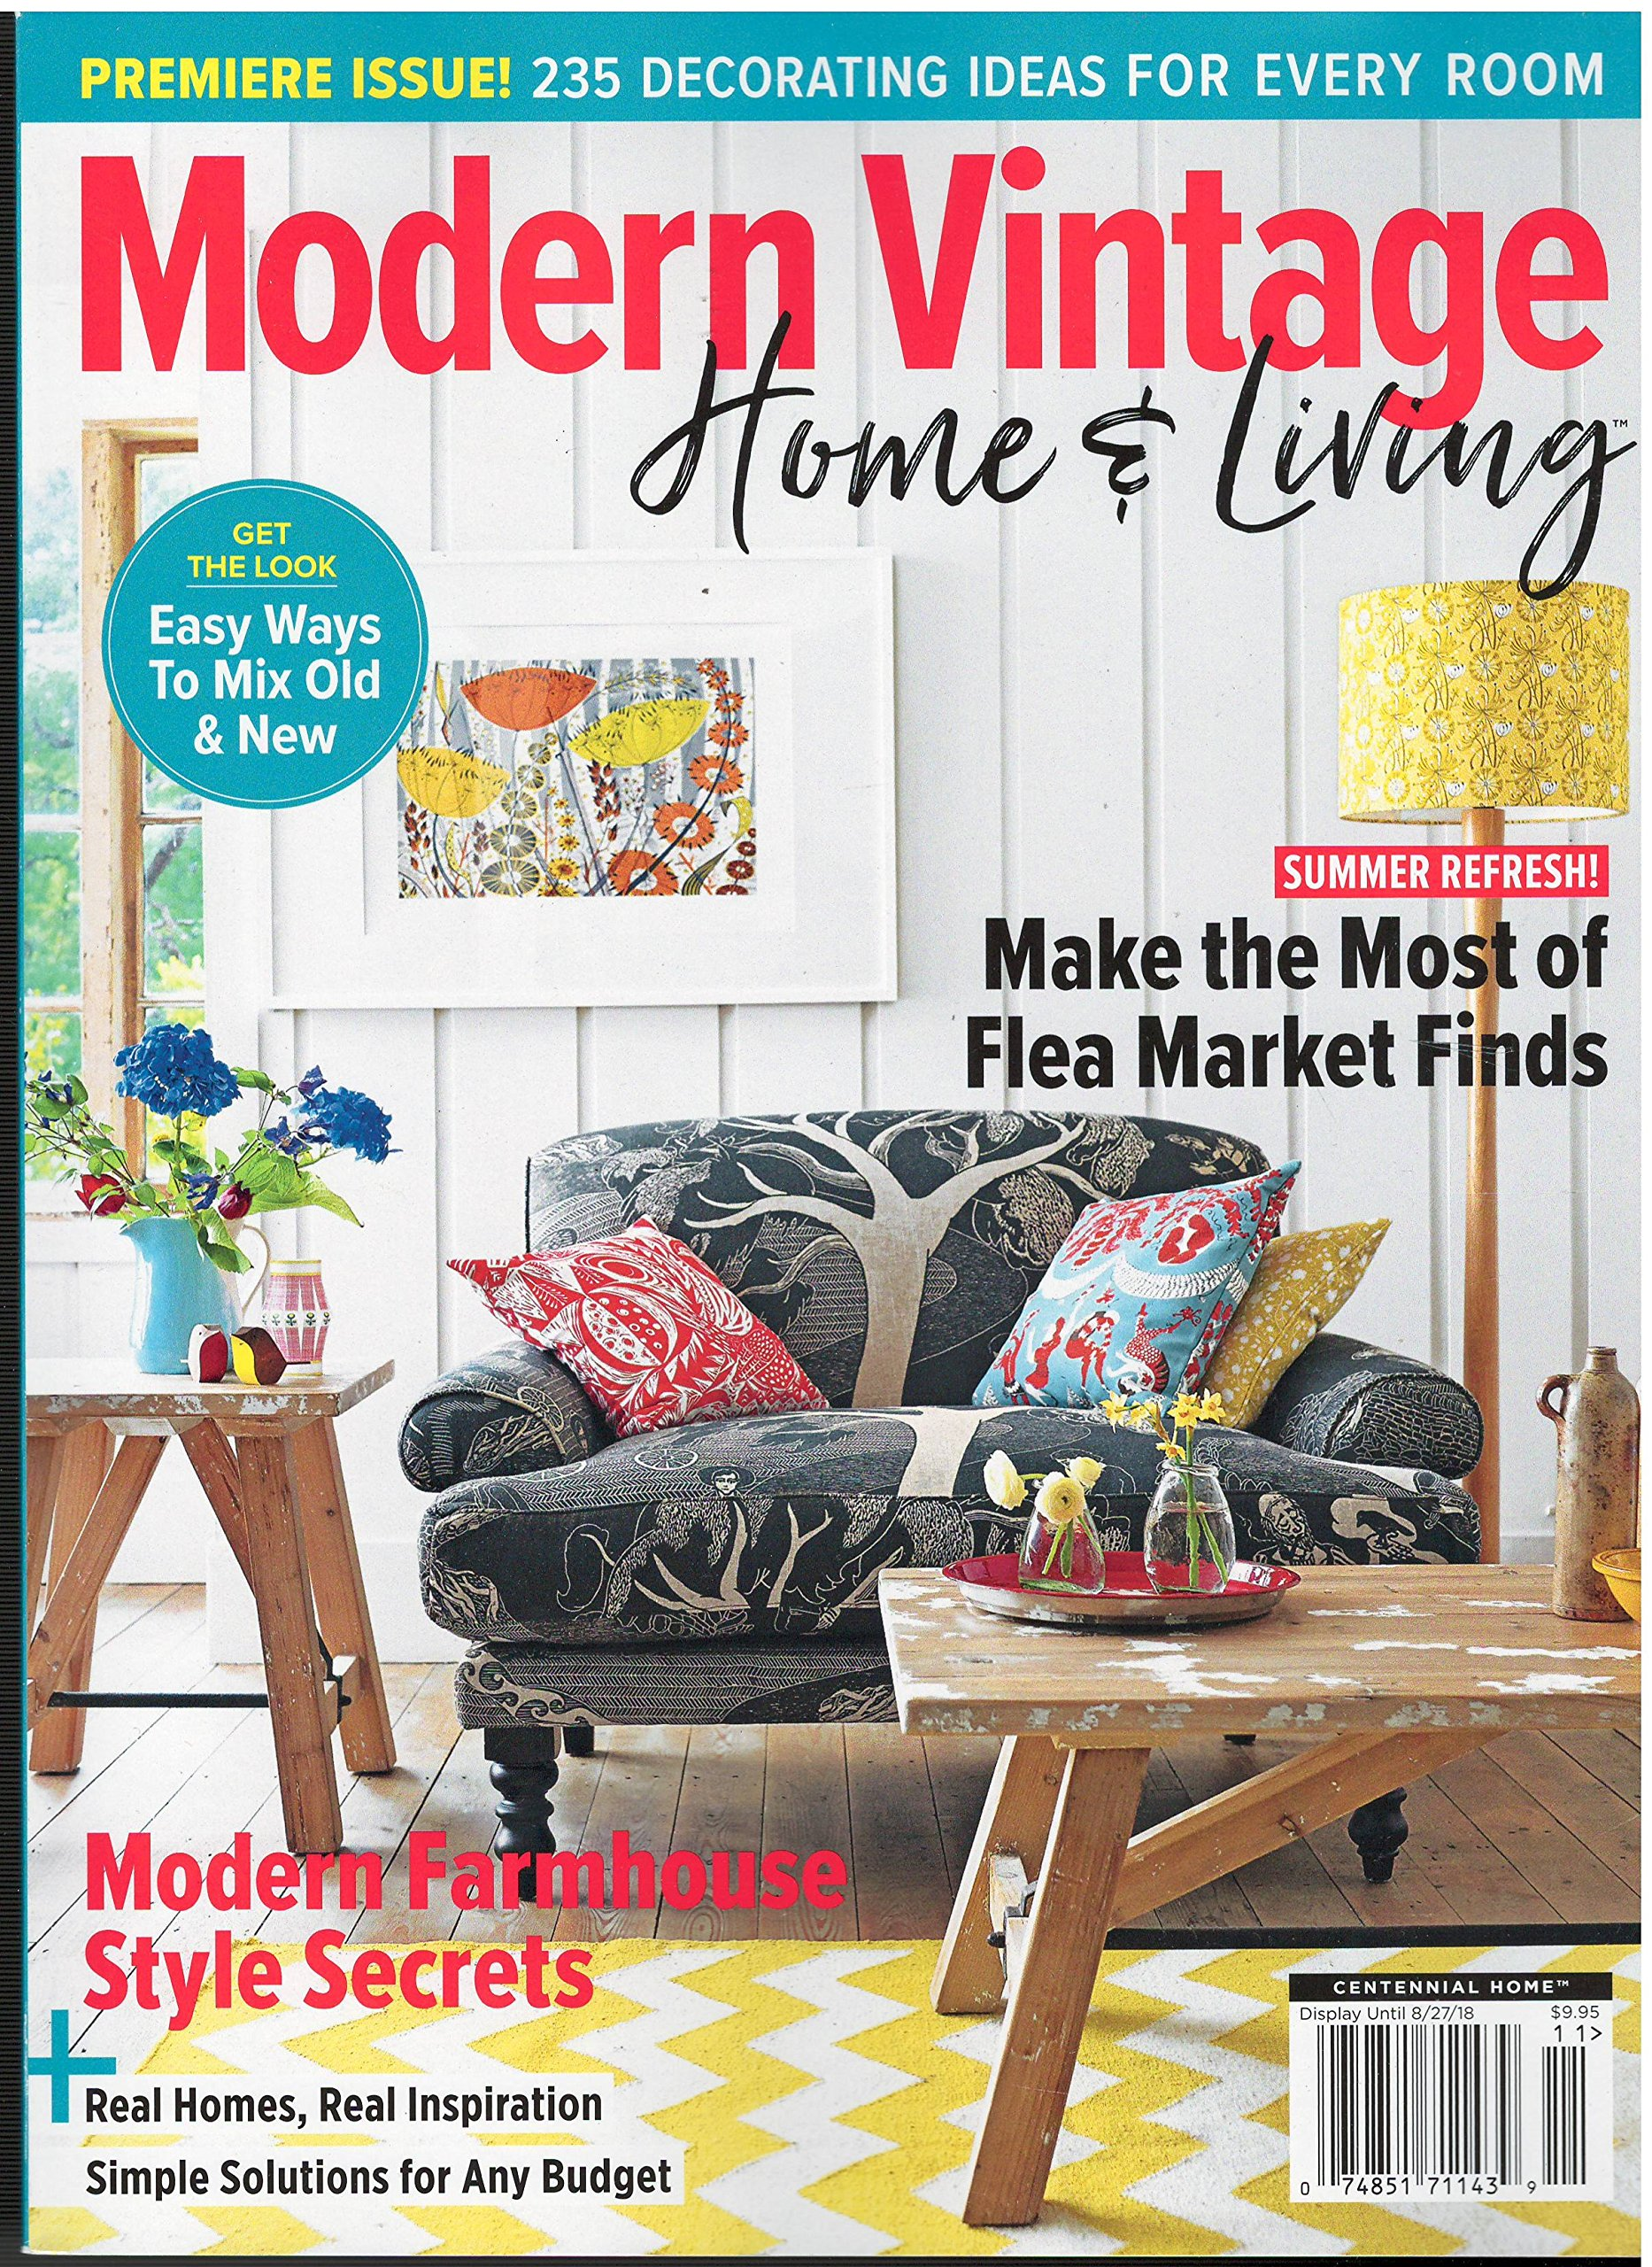 modern vintage home and living cover